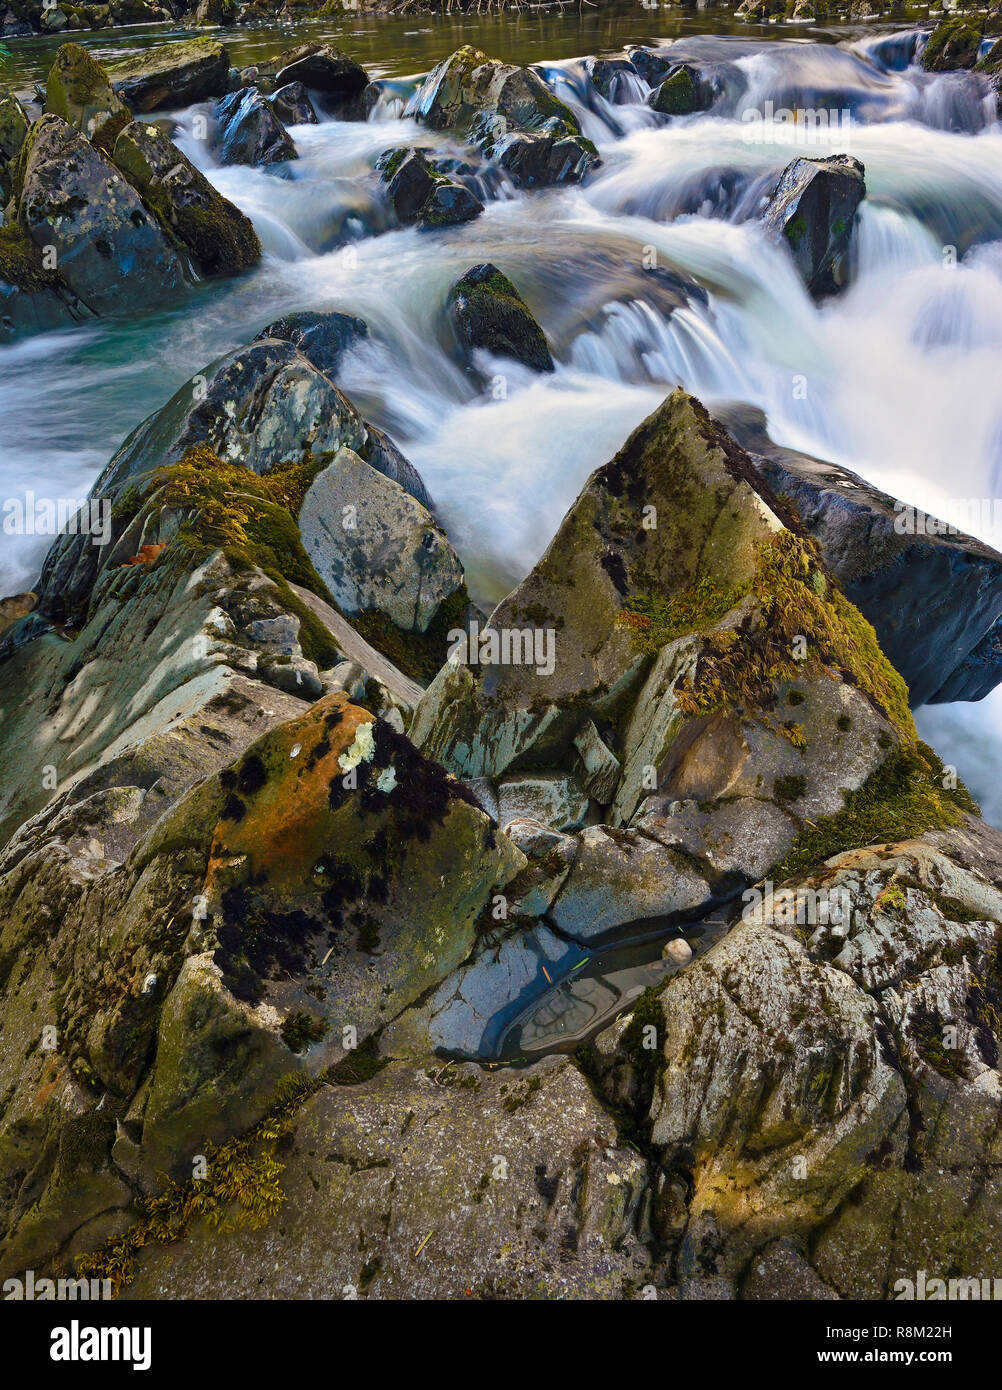 A close-up section of The River Llugwy, Betws y Coed, in the Snowdonia, National Park Wales, UK - Stock Image